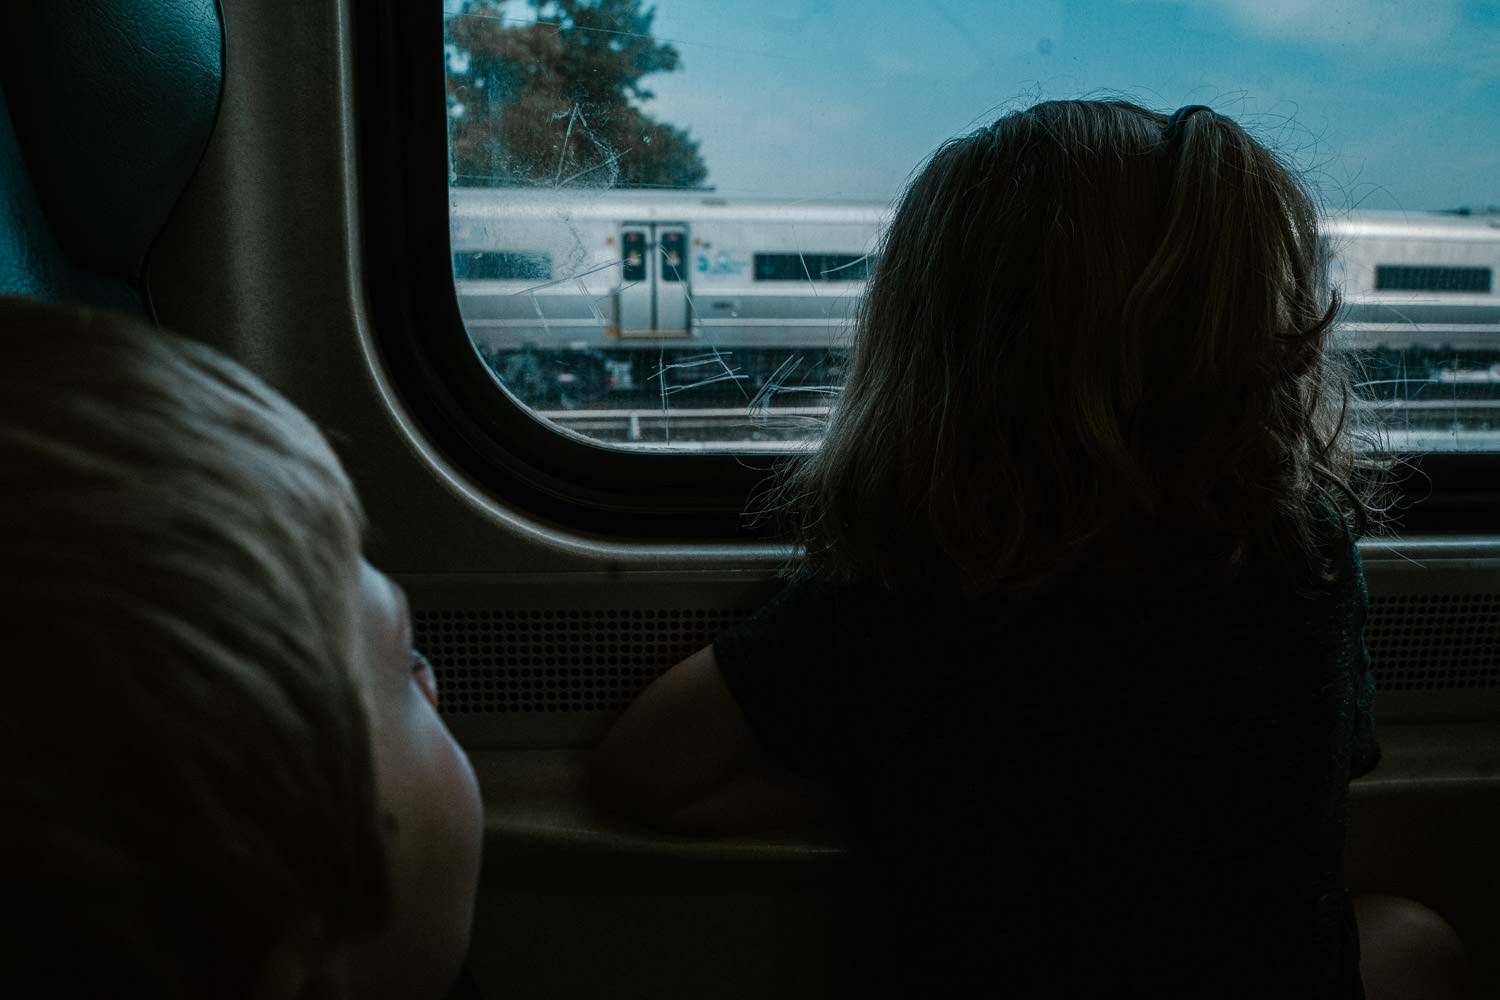 Two children look out a window of a train.